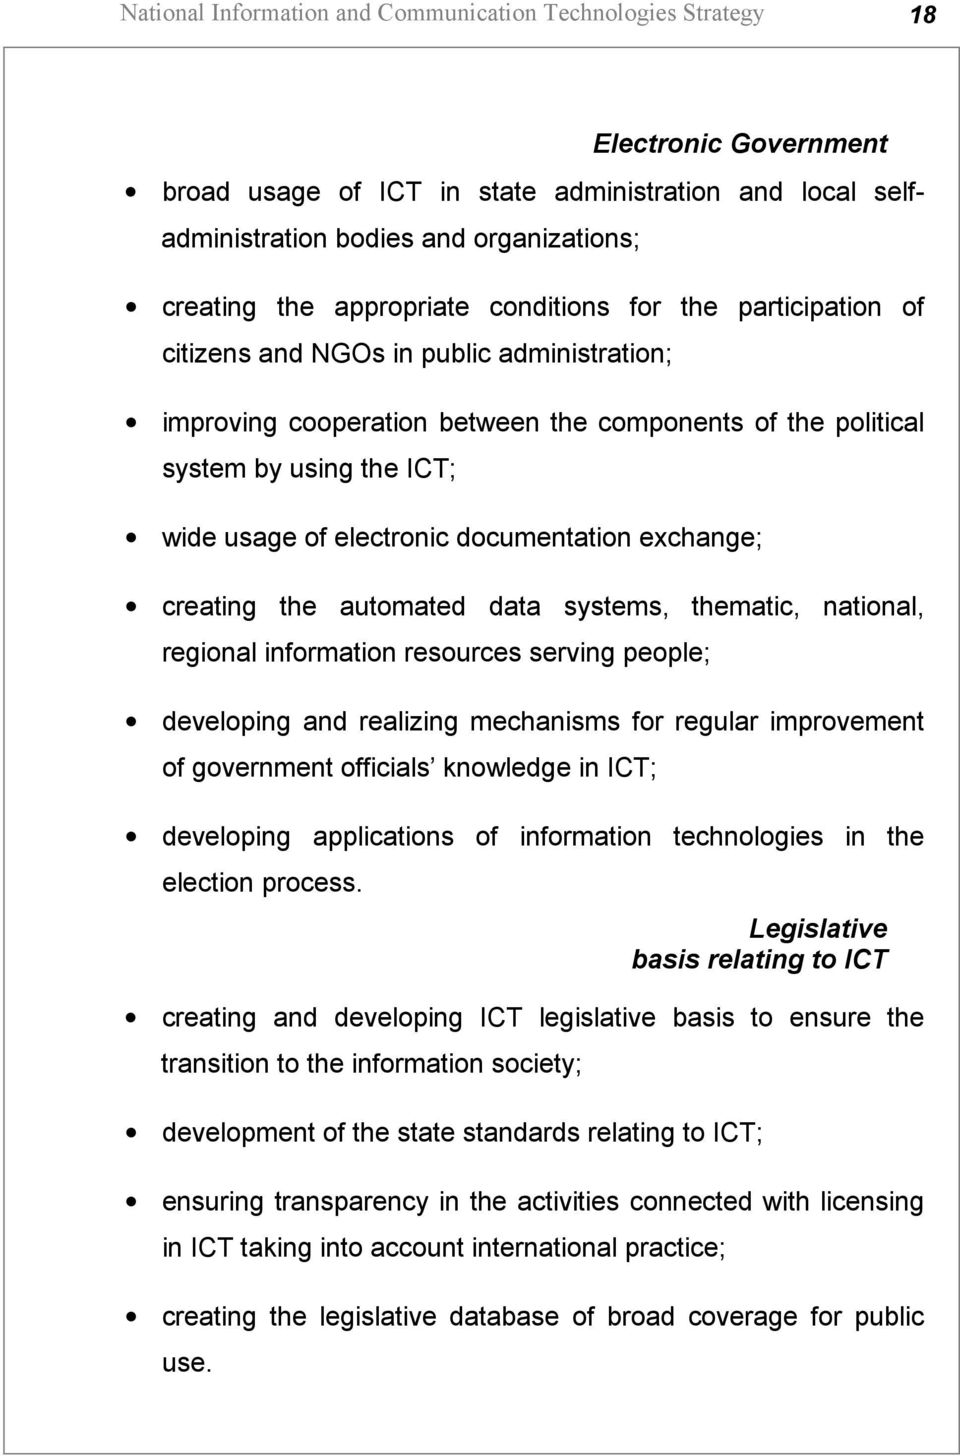 electronic documentation exchange; creating the automated data systems, thematic, national, regional information resources serving people; developing and realizing mechanisms for regular improvement